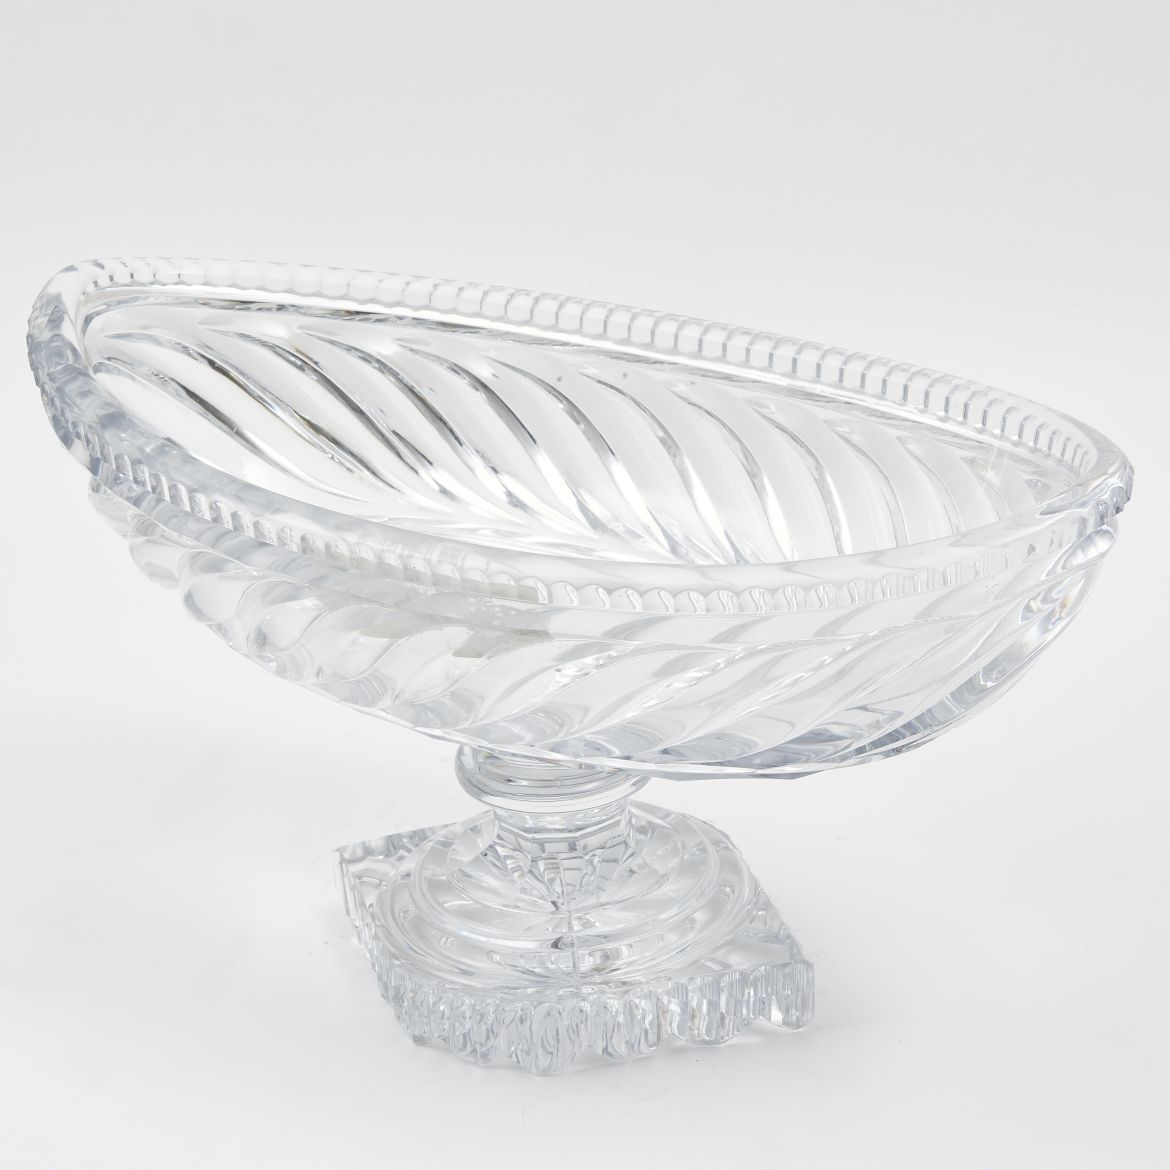 Victorian Cut Crystal Footed Bowl